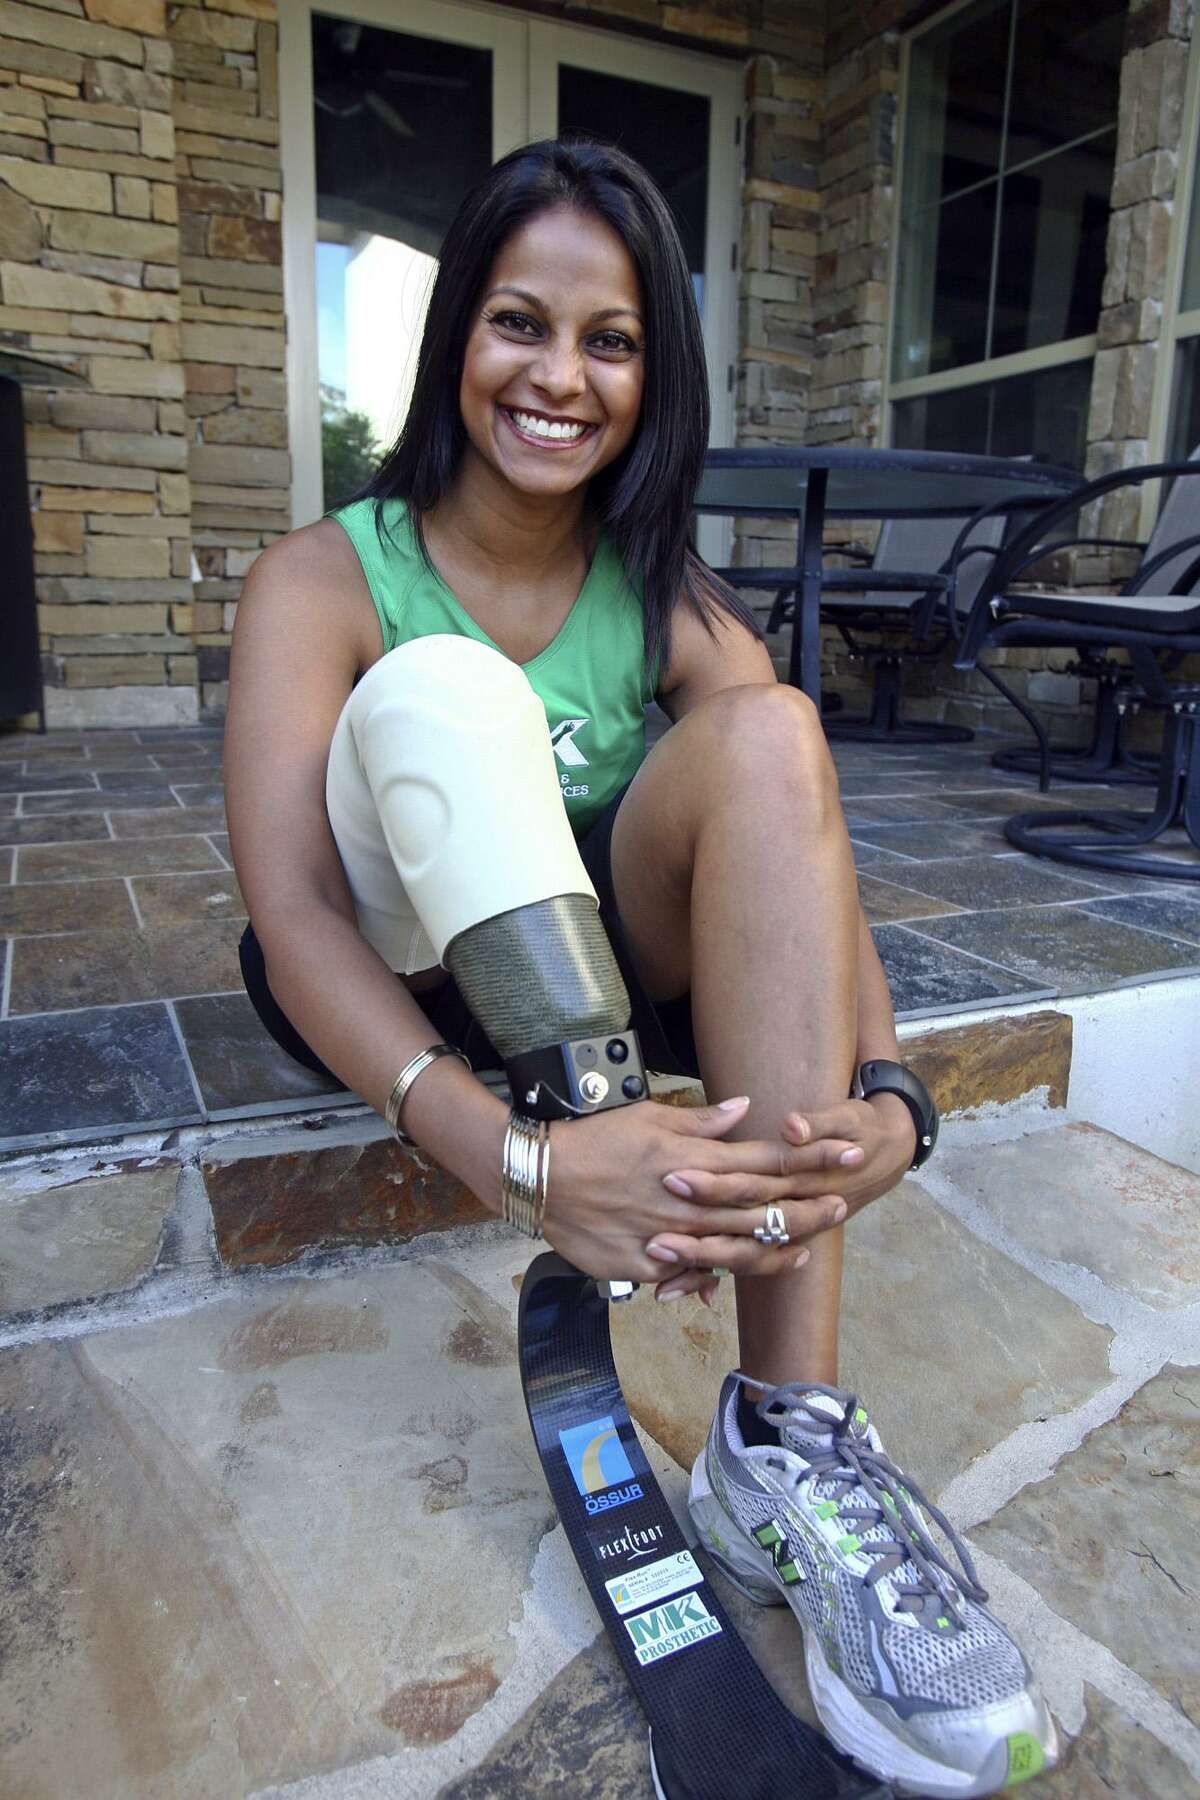 Mona Patel, whose right leg was amputated below the knee, is seen training for a half-marathon.